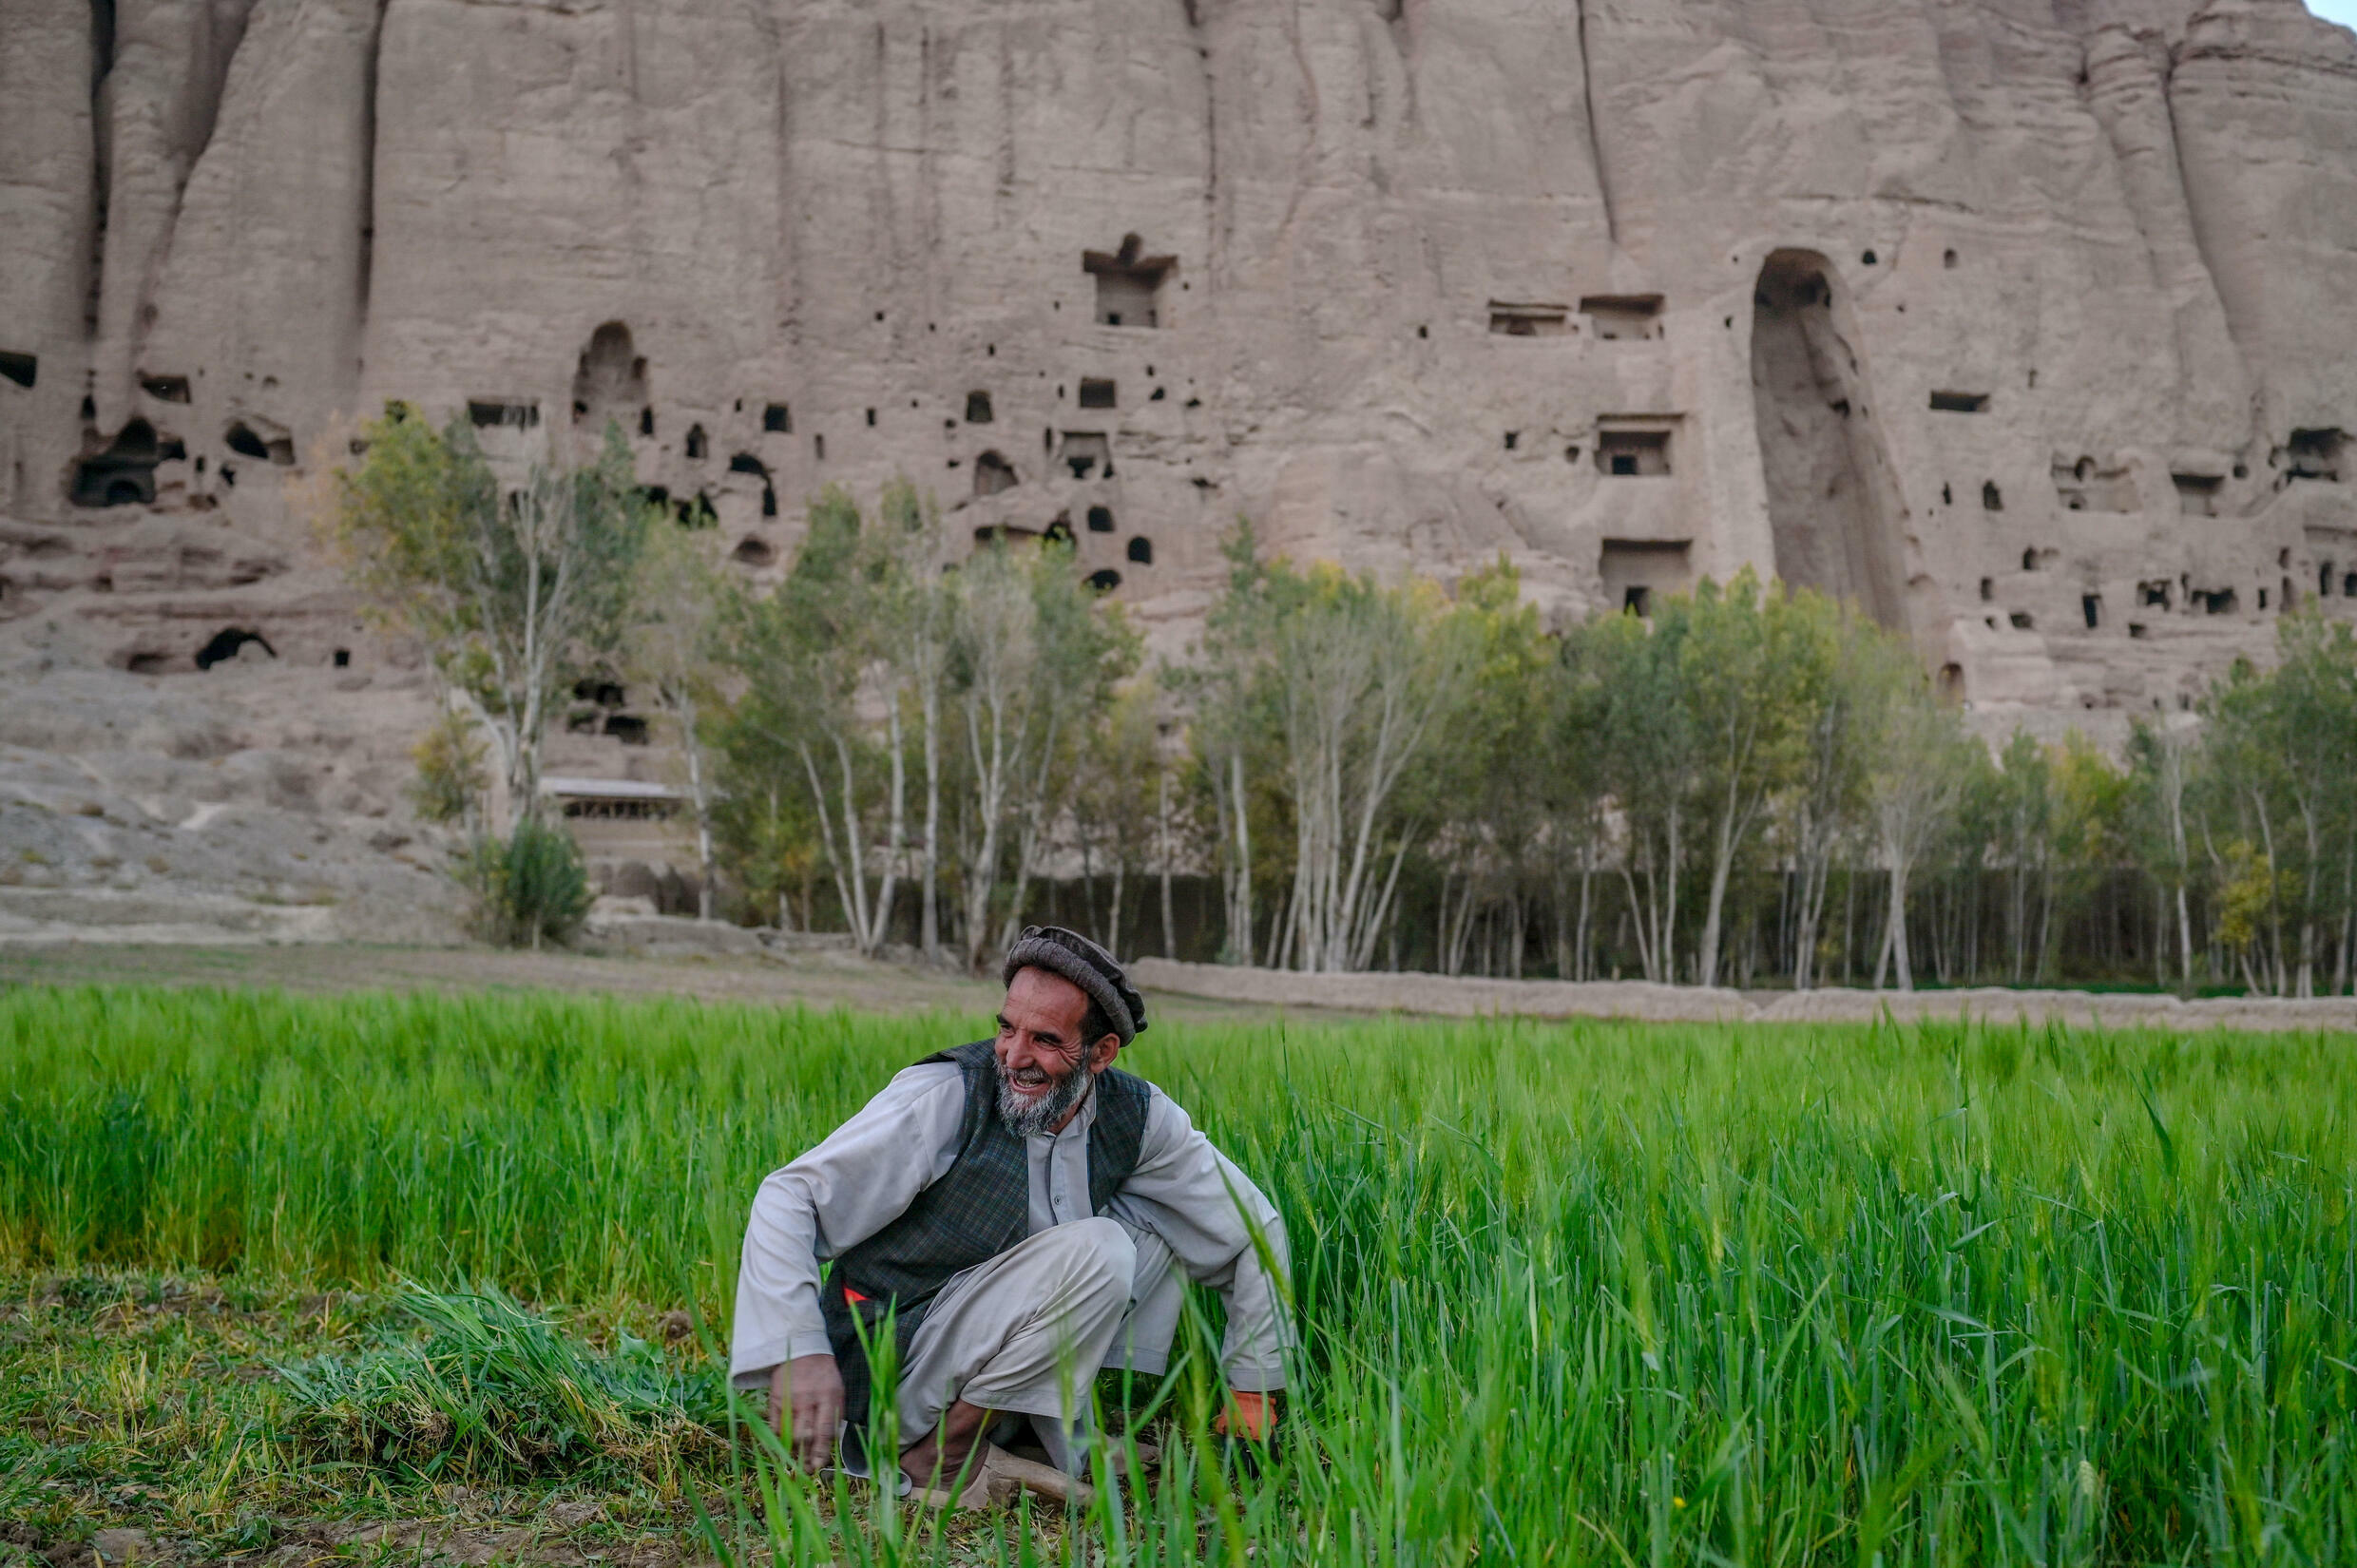 Bamiyan houses Buddha statues destroyed by the Taliban in their previous ruling